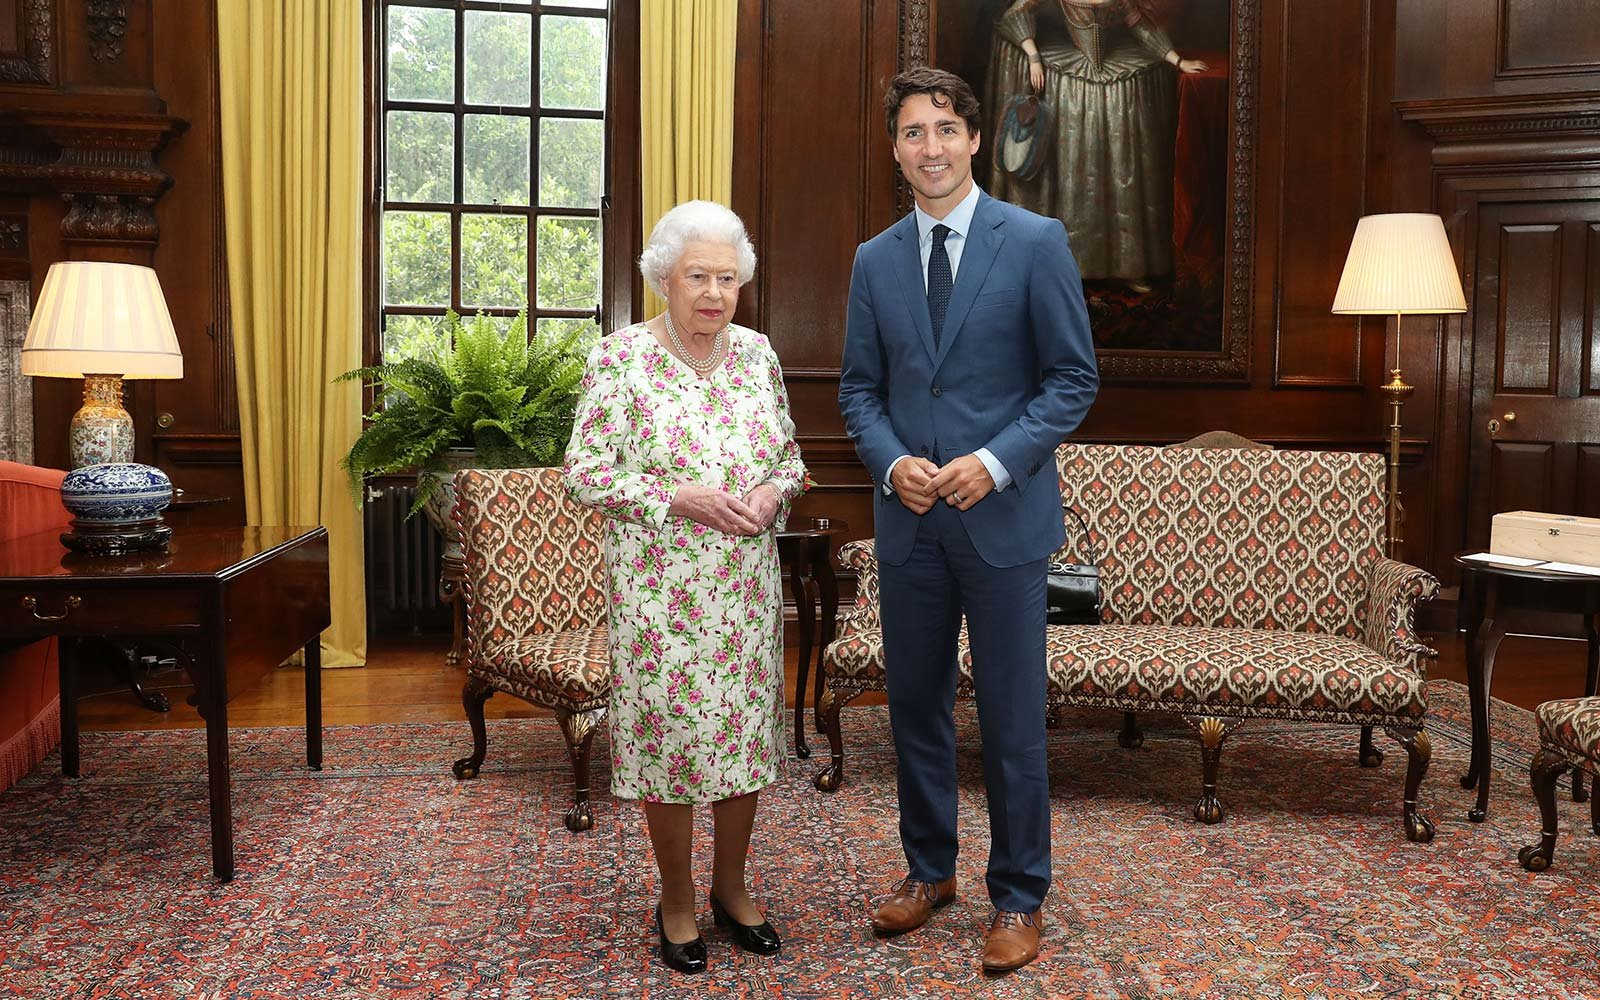 Canadian Prime Minister Justin Trudeau Made The Queen Of